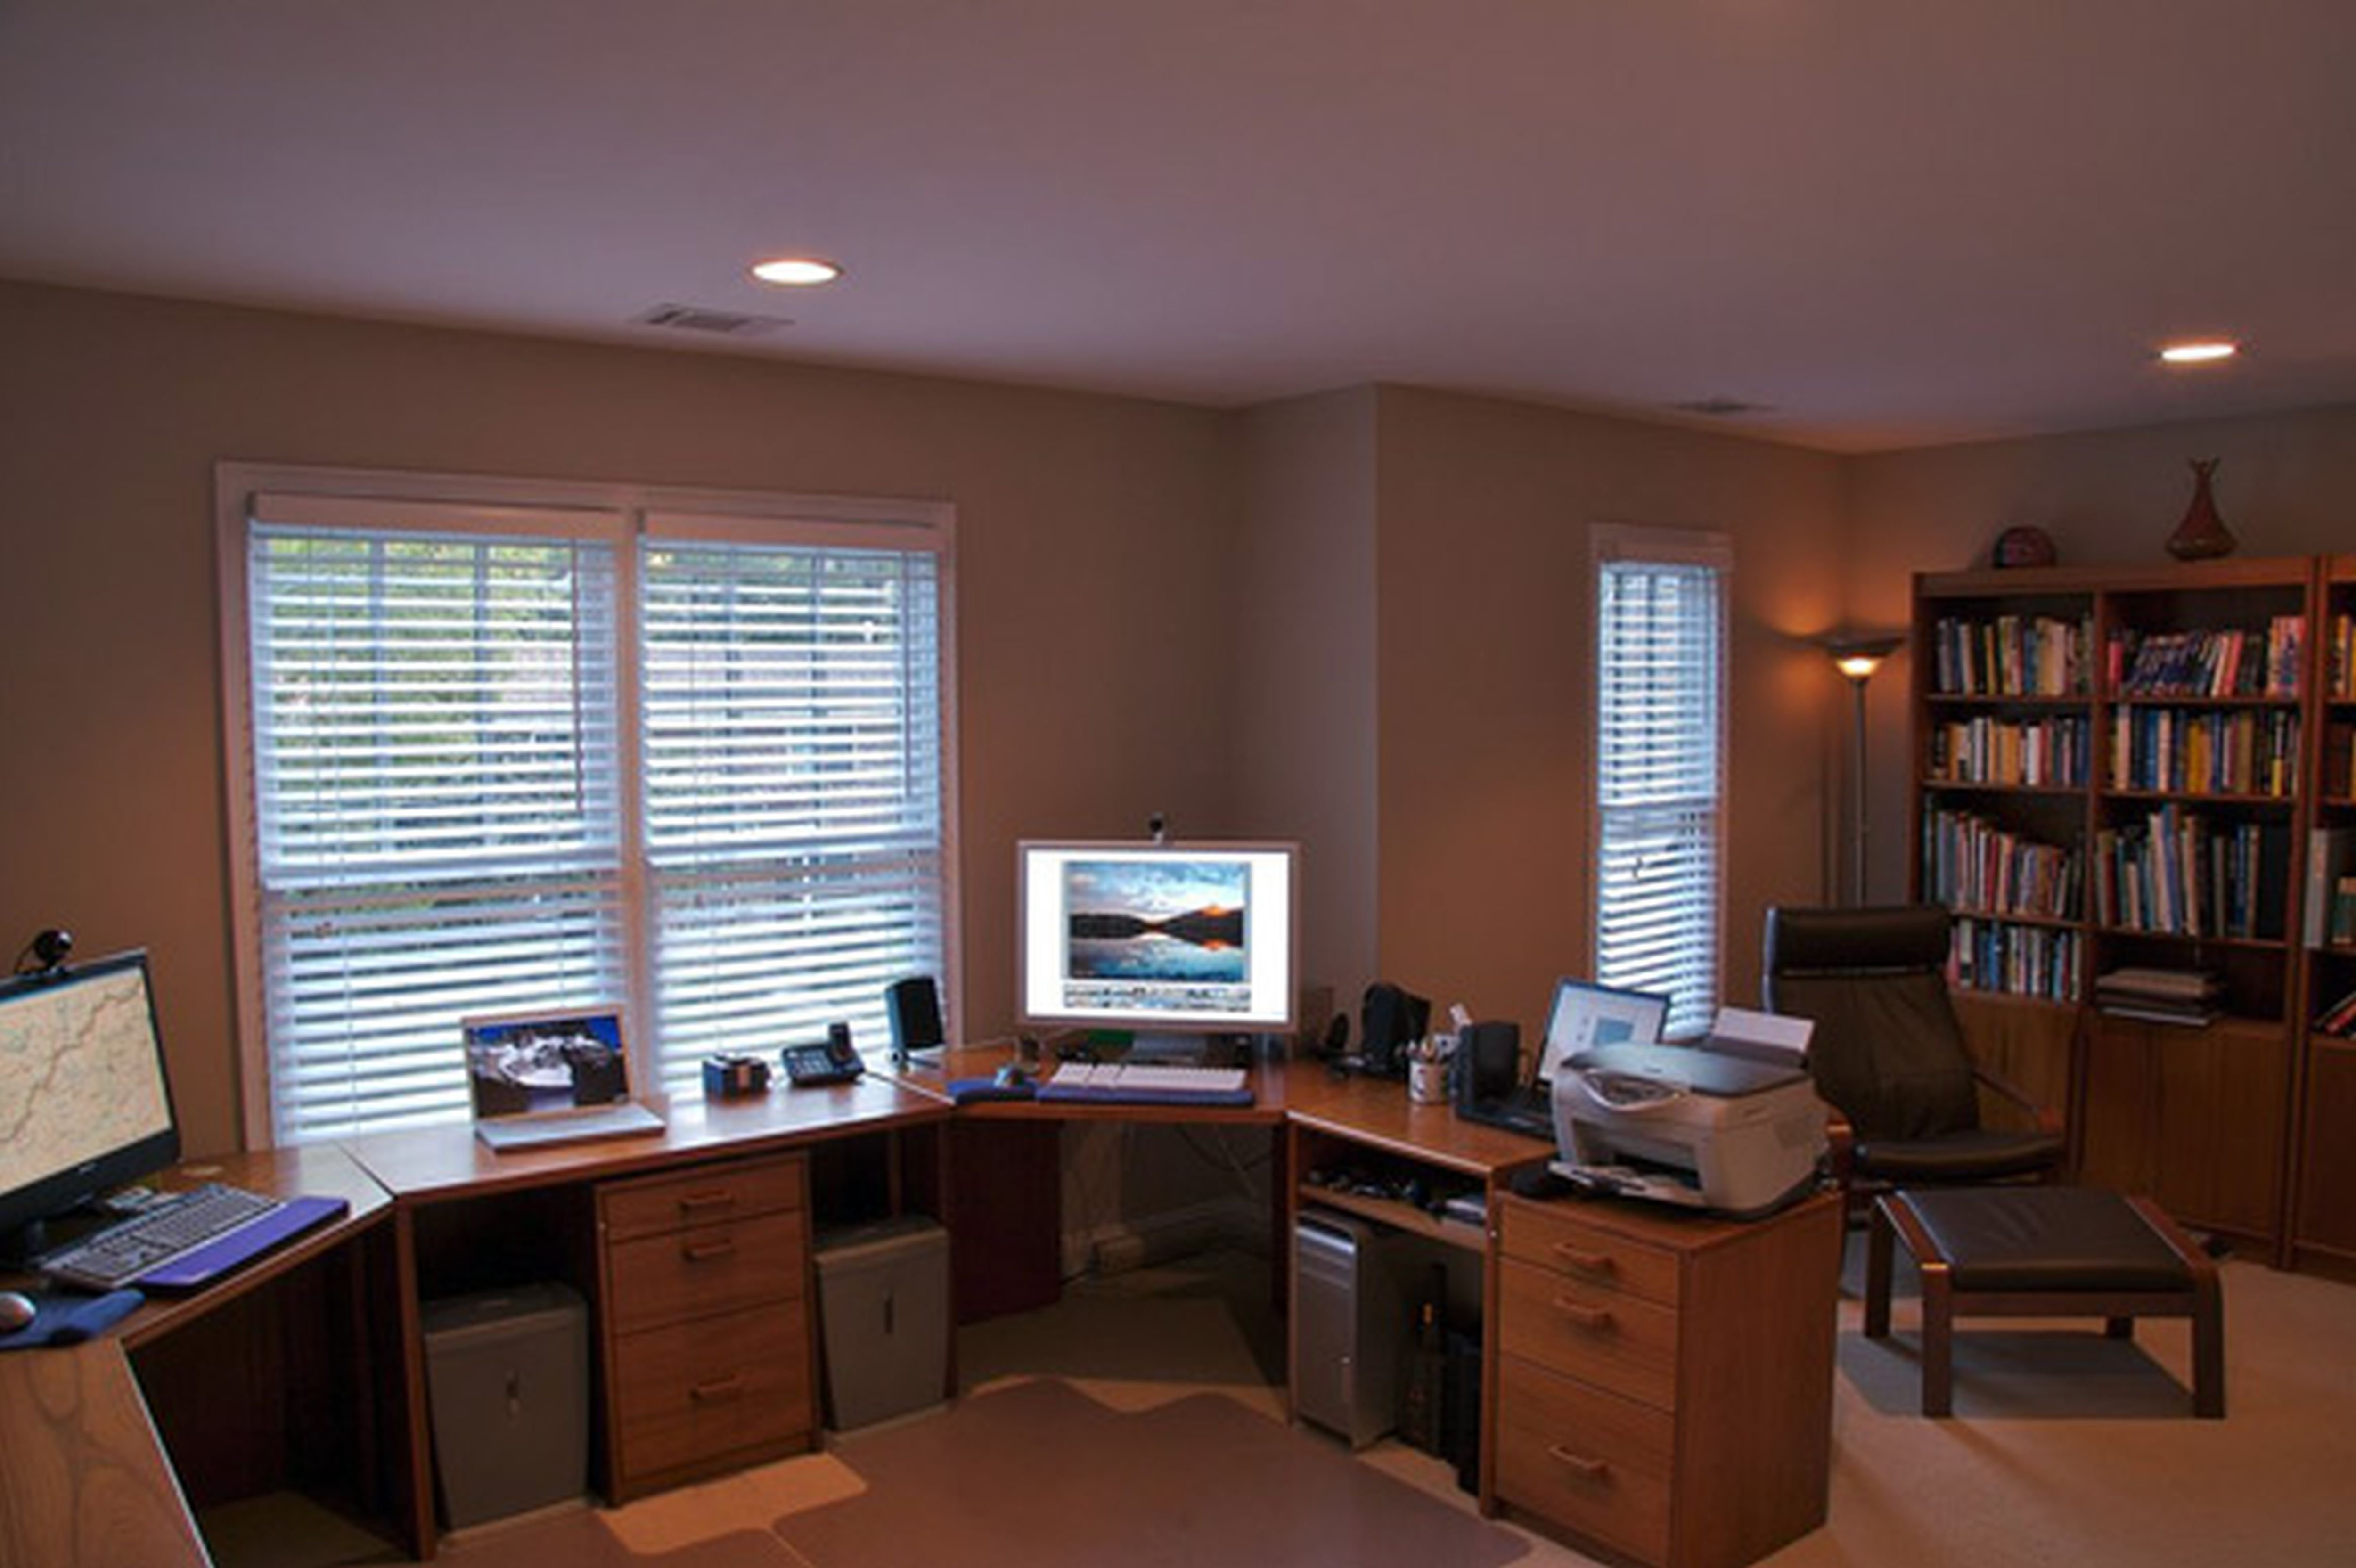 10 Most Popular Work From Home Ideas 2013 home office home office design home office space office desks and 2020